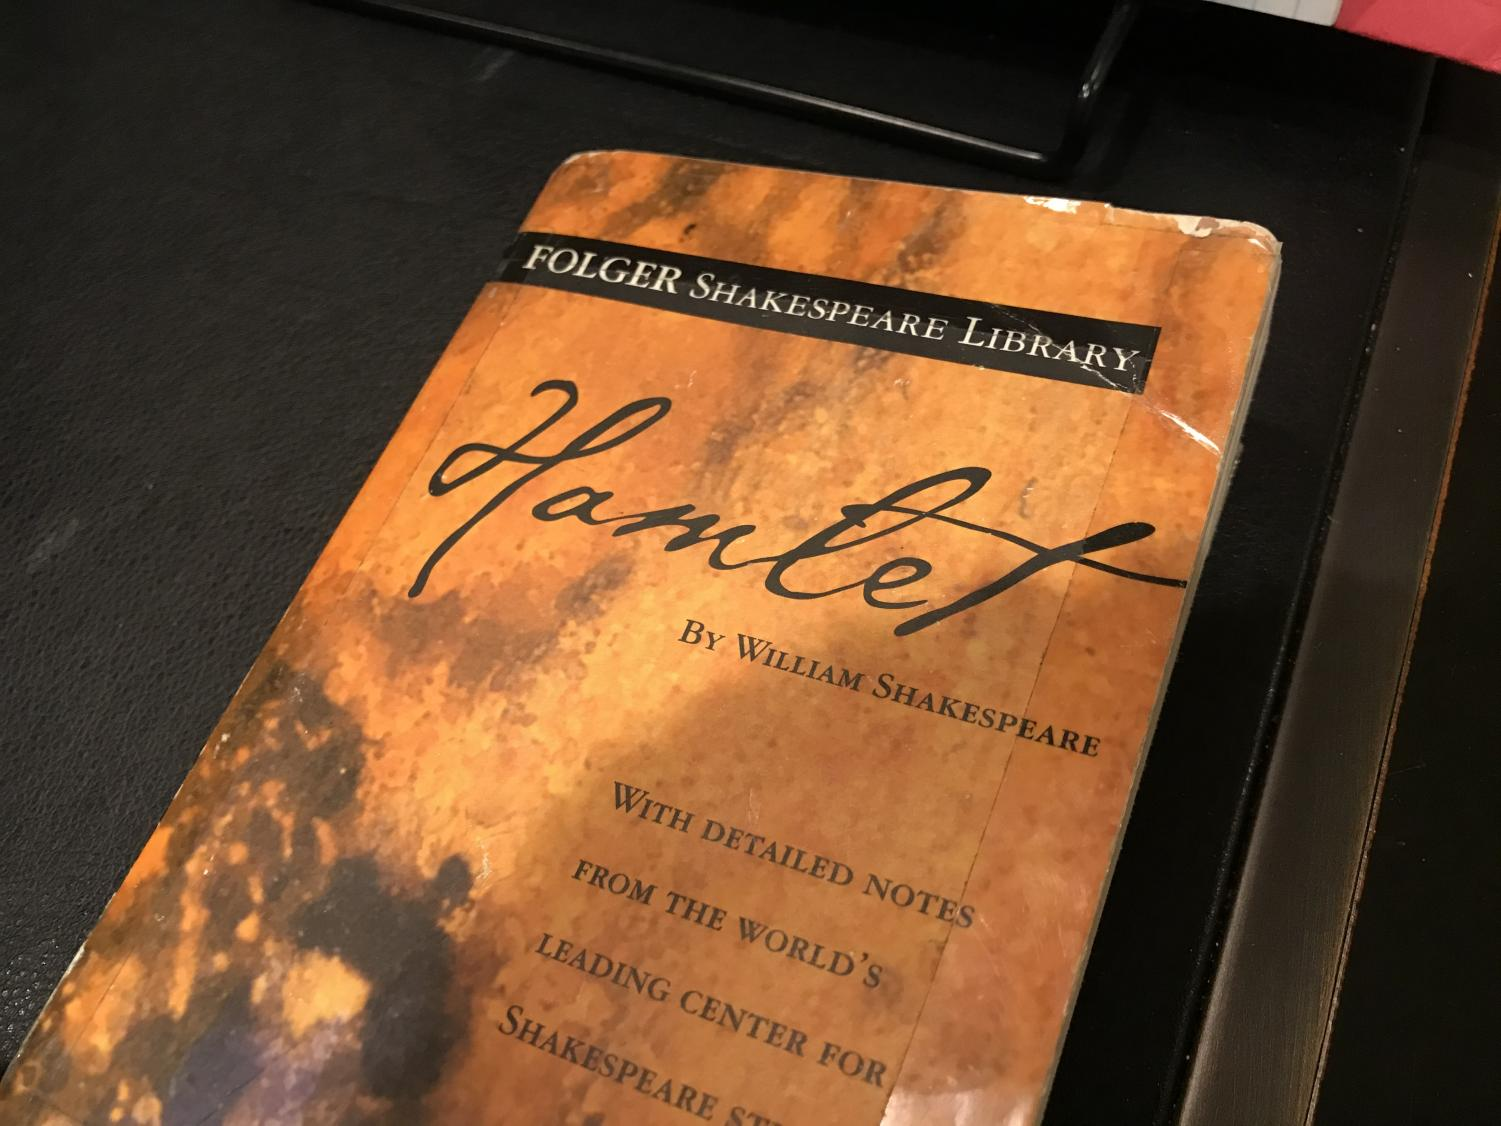 Books such as this copy of Hamlet are simply scripts of plays, which were meant to be watched live